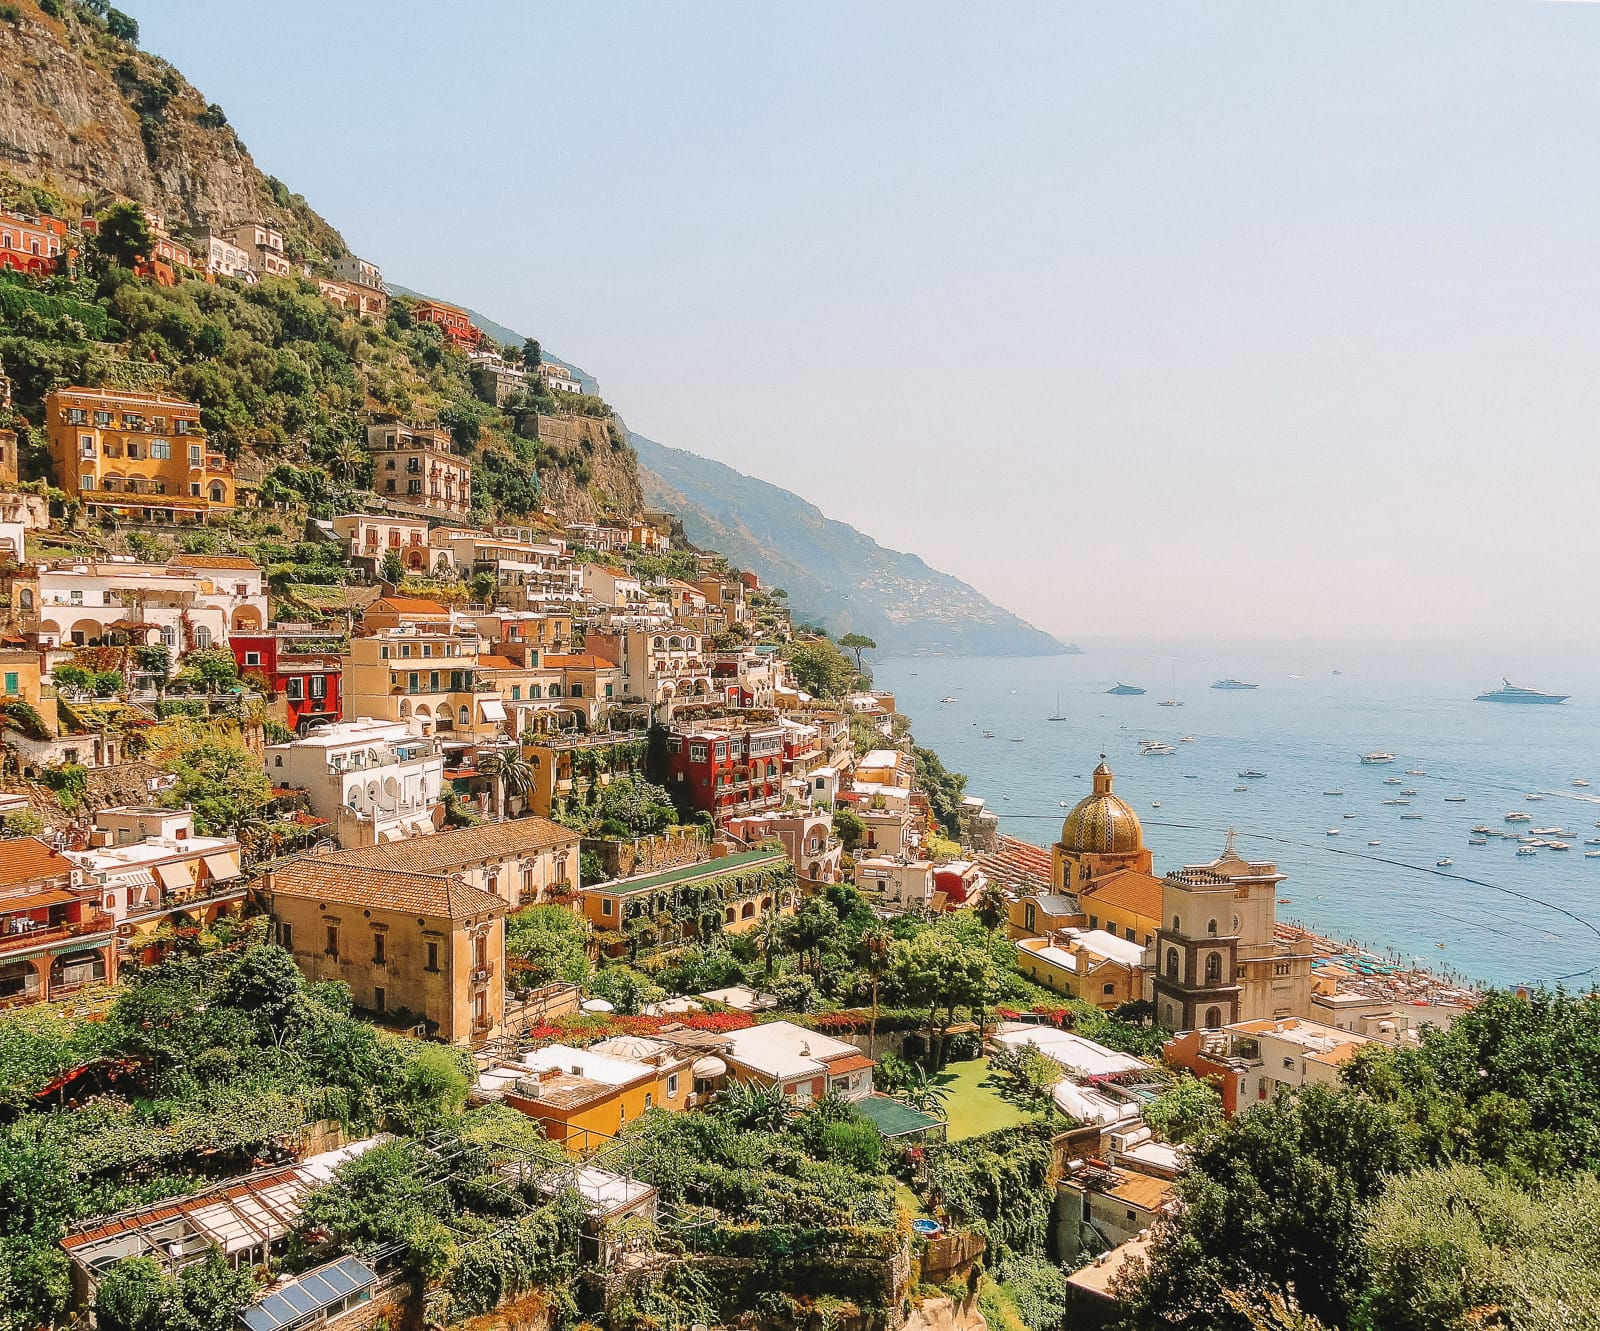 12 beautiful places in the amalfi coast of italy that you have to